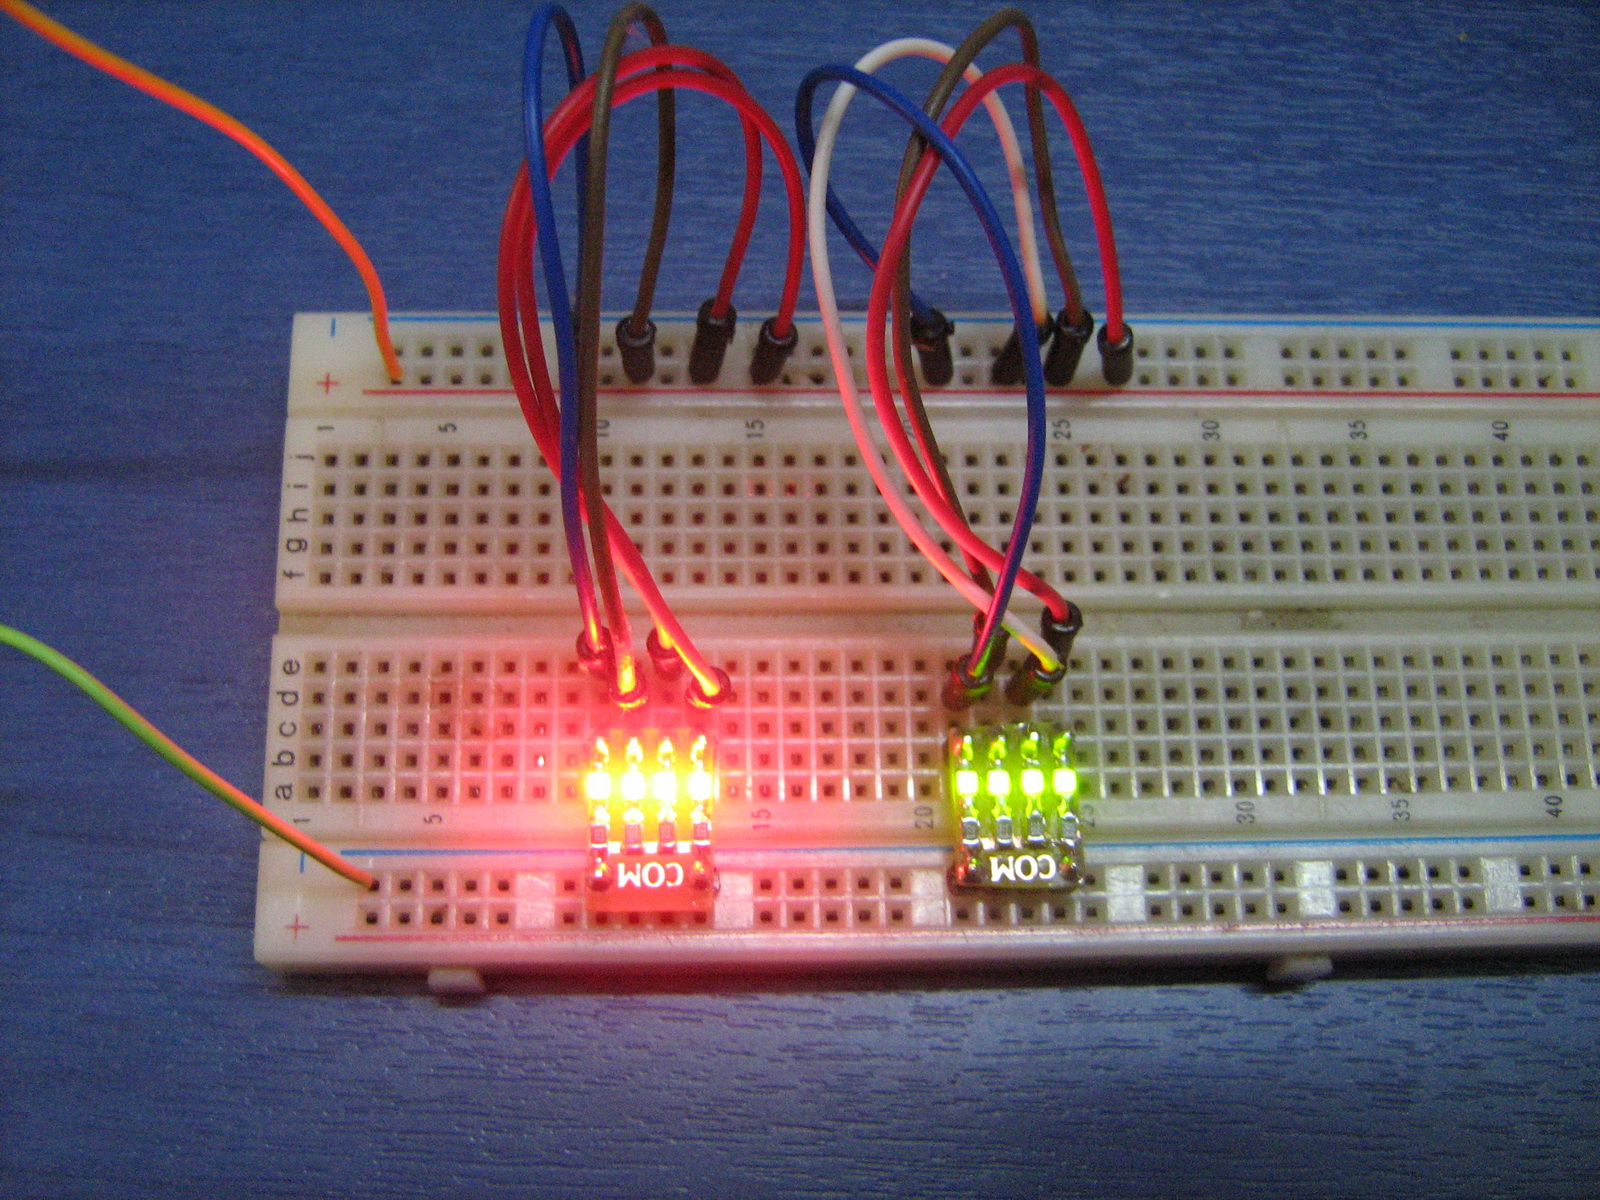 Projects Pcb Heaven What Are Electronic Circuit Tiny Led Debugging Board For Breadboard Prototyping I Made A Very Simple With 4 Leds And Resistors Pre Wired Mainly